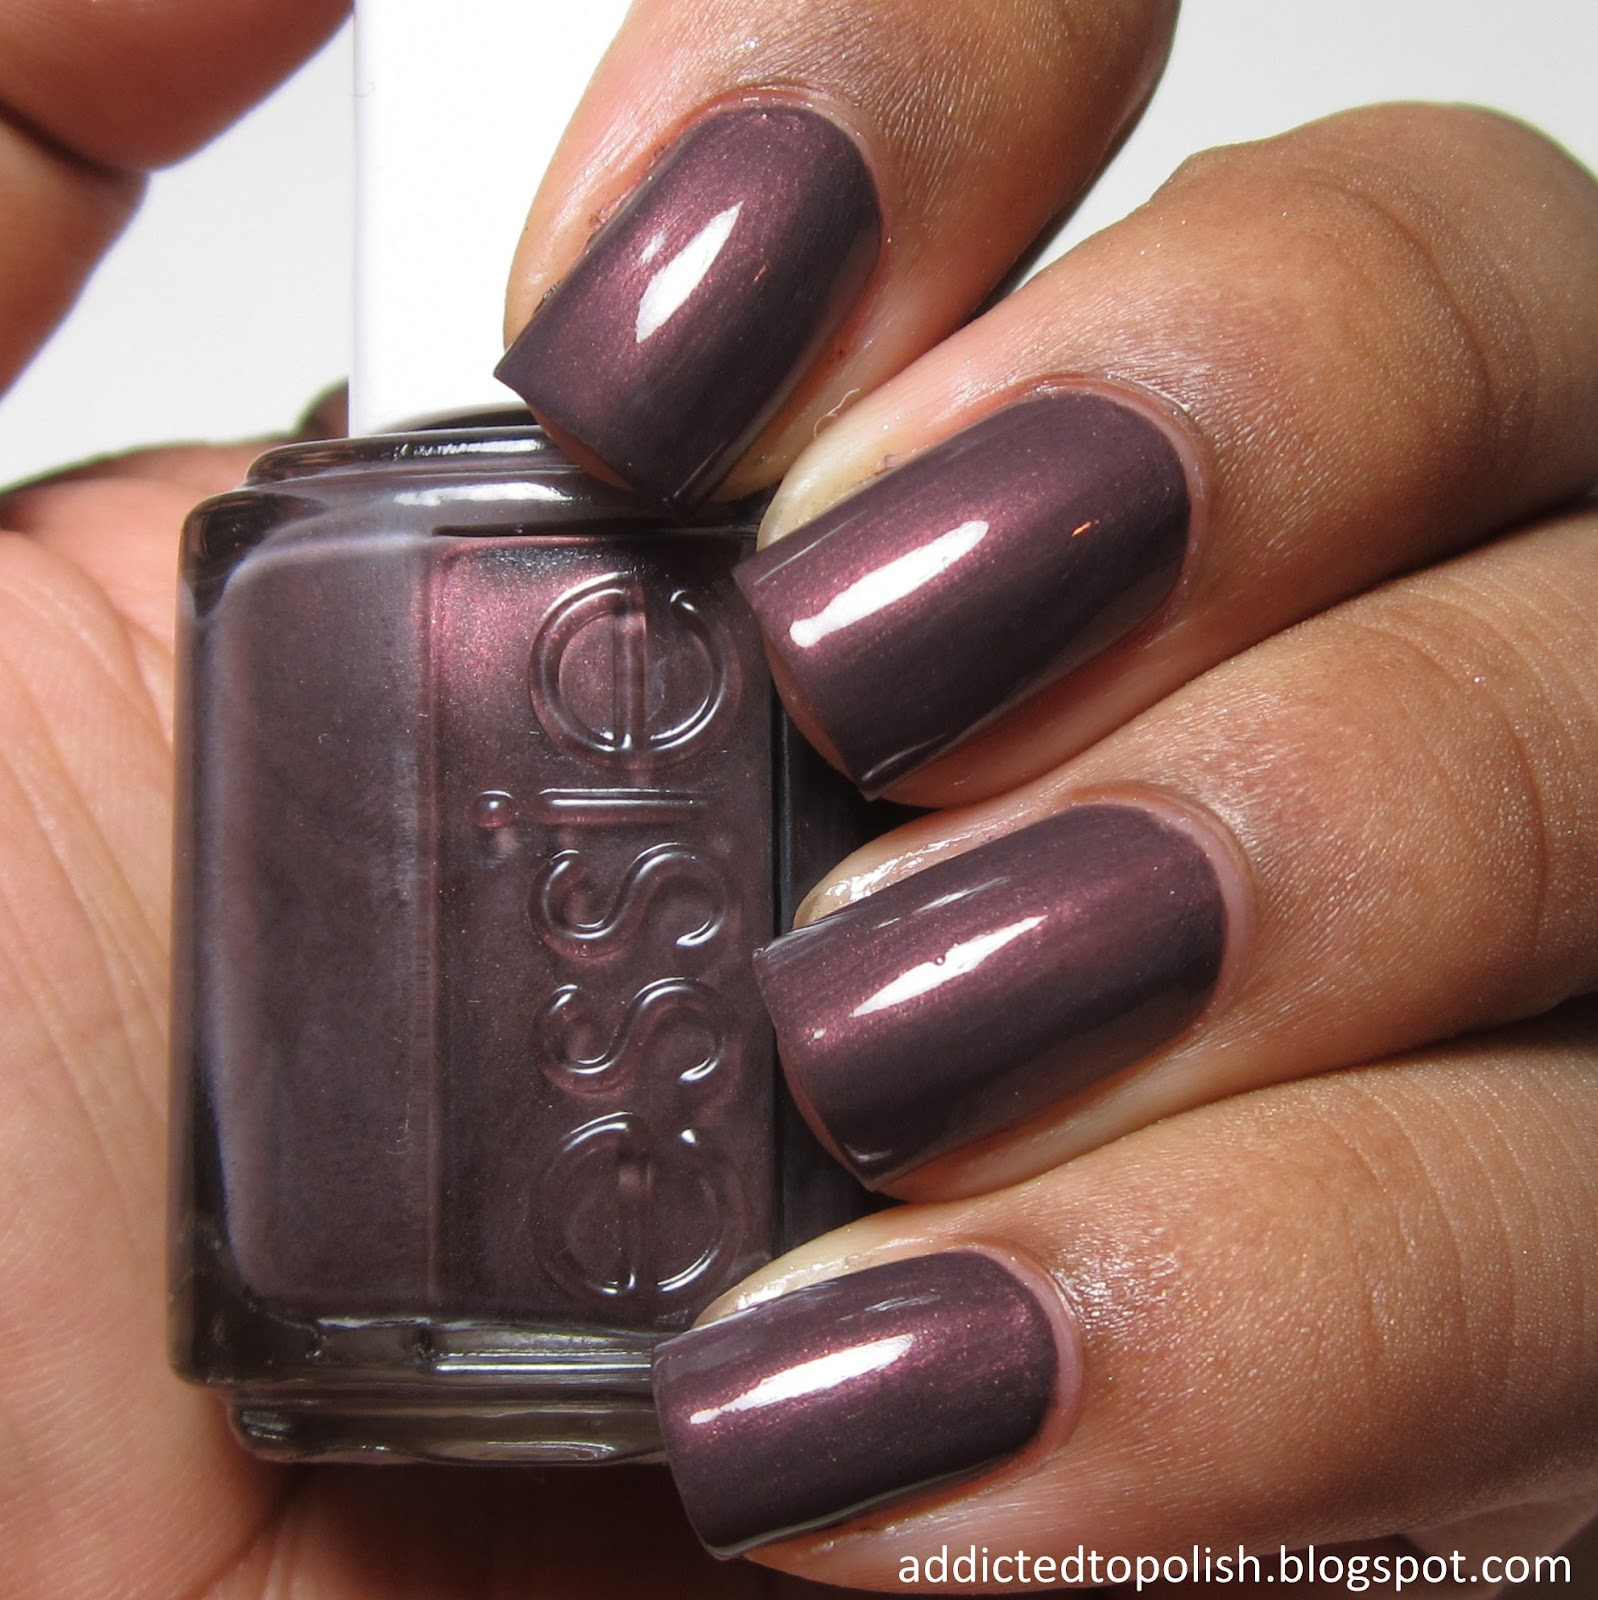 Addicted to Polish: Essie Sable Collar